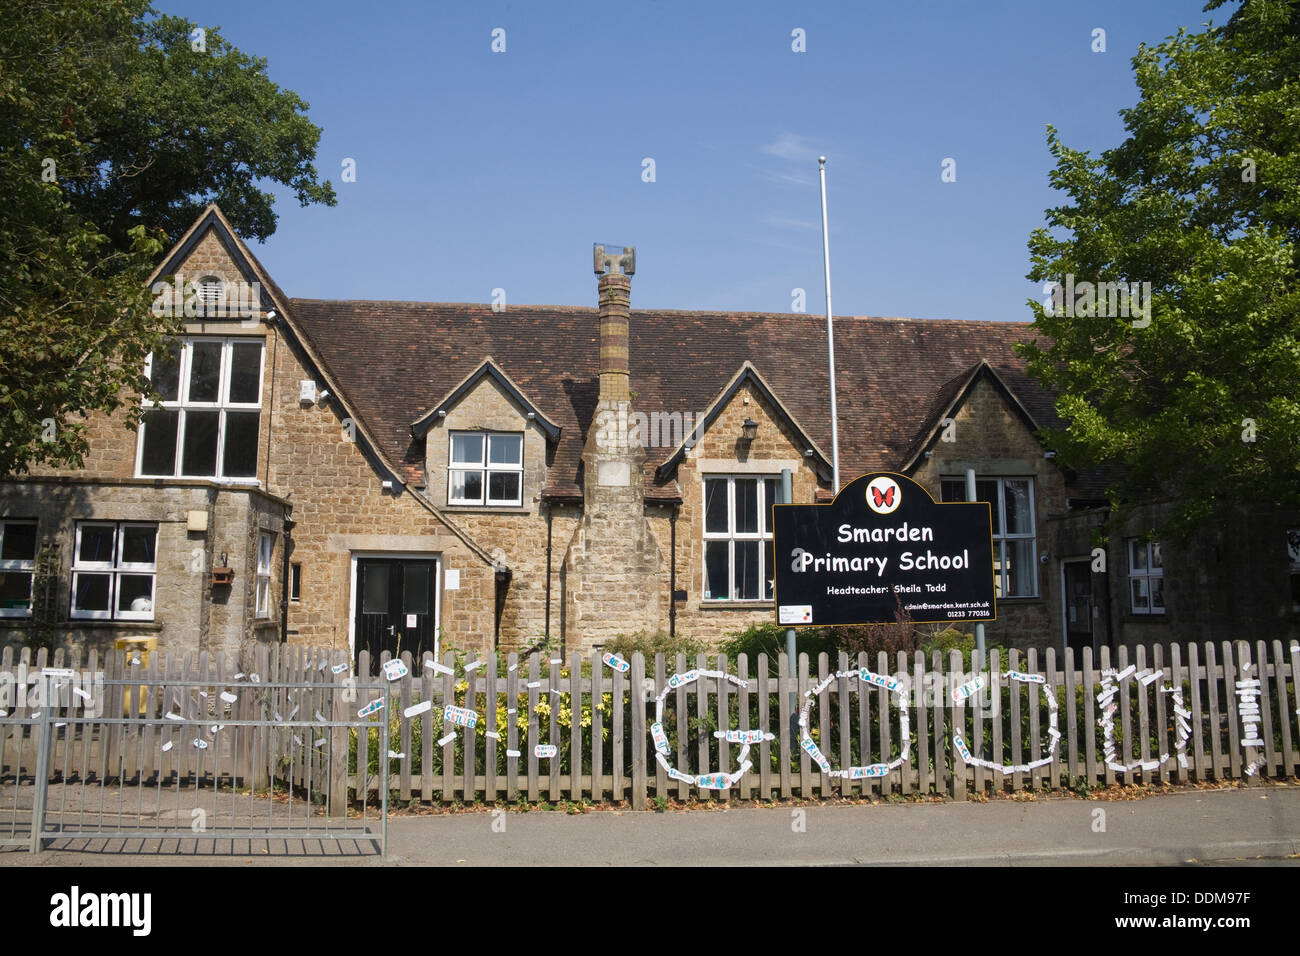 Smarden Primary School building Ashford Kent South East England UK in the heart of the community educating young schoolchildren - Stock Image